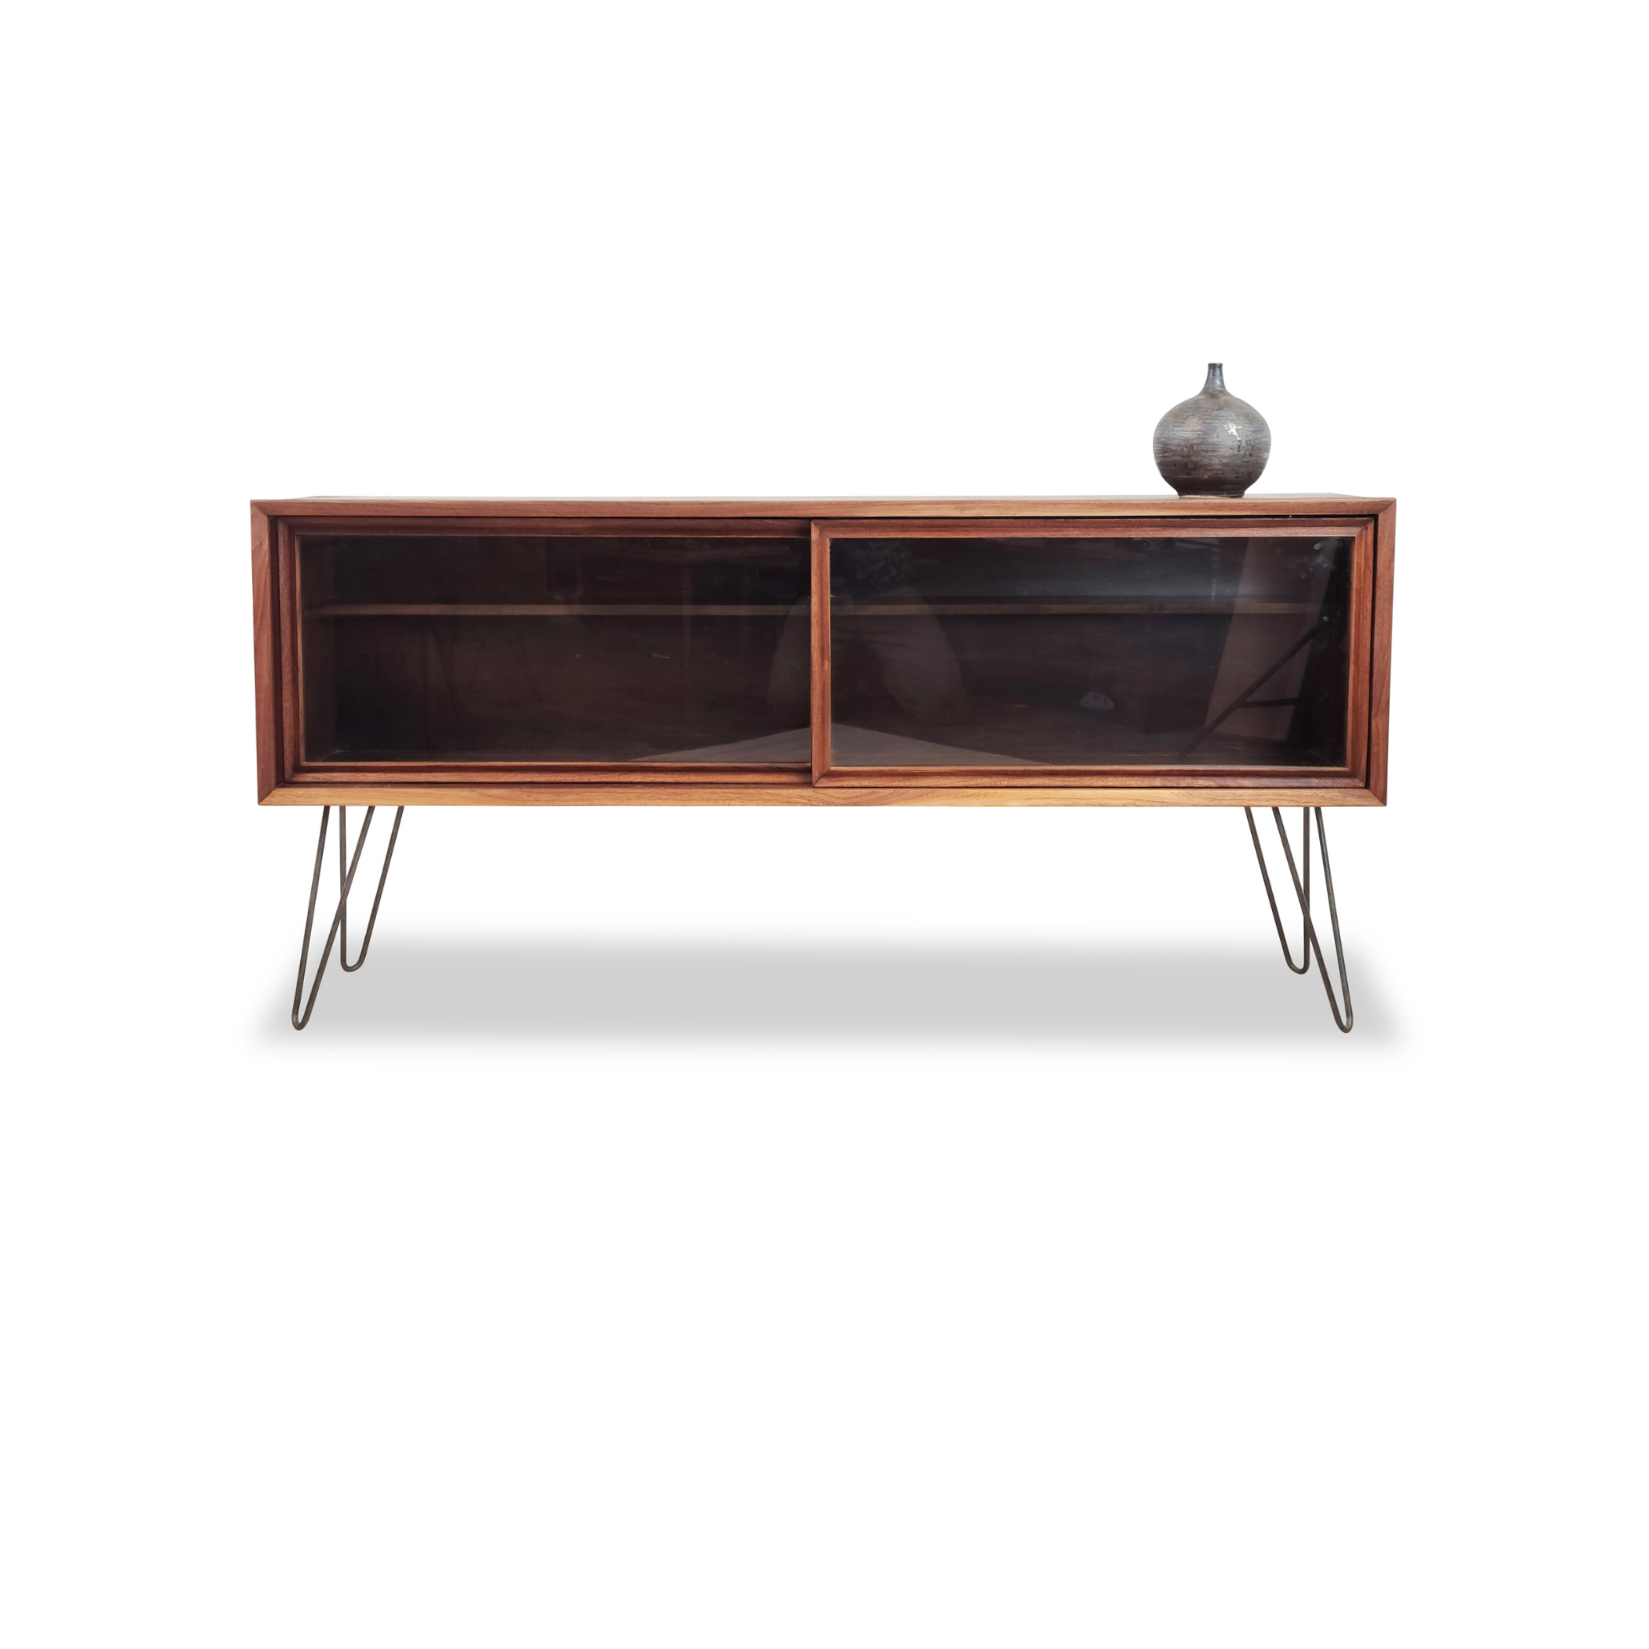 Walnut Cabinet by Honderich